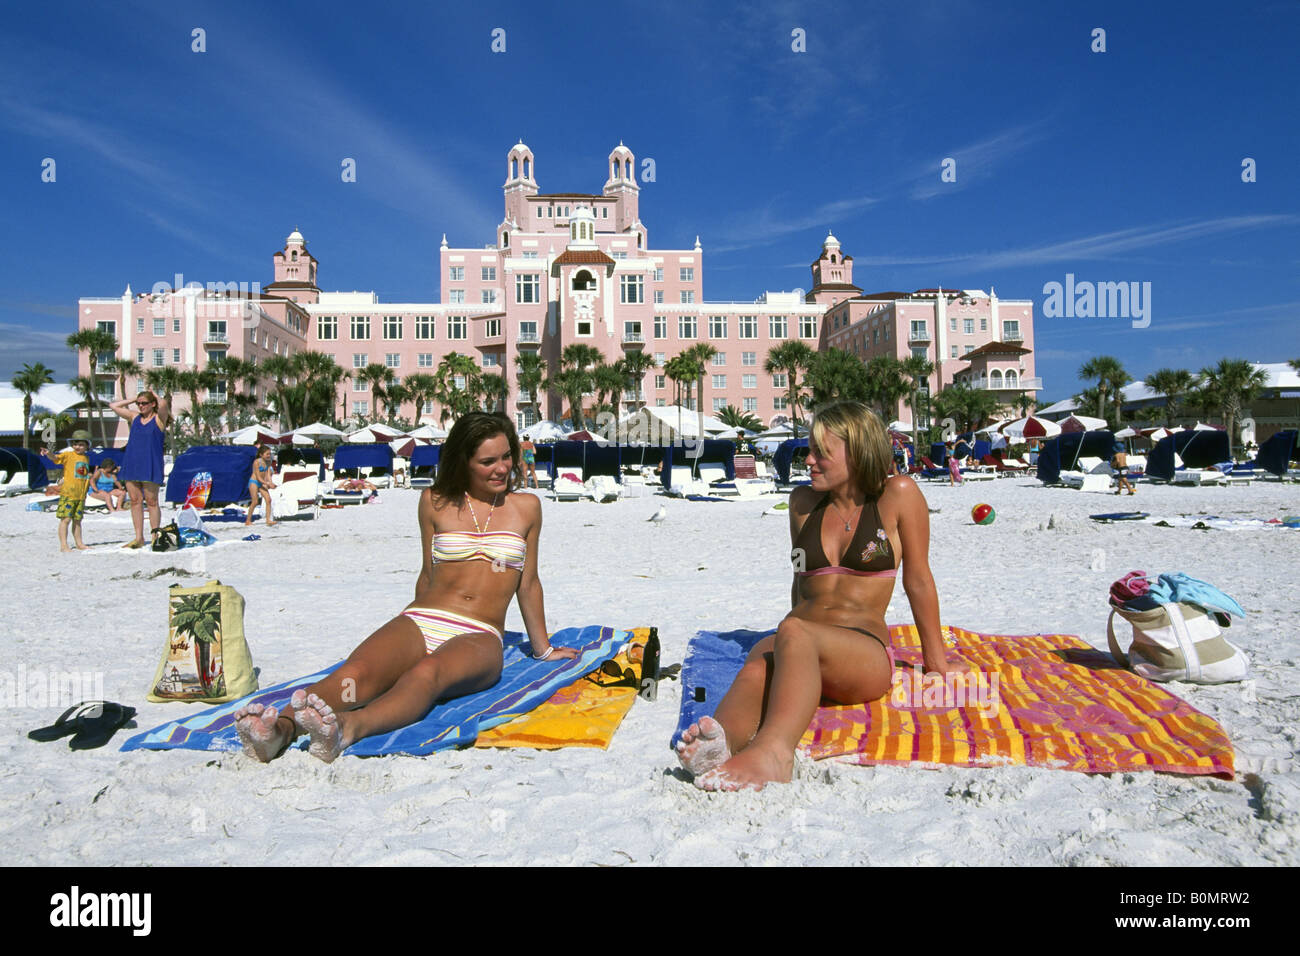 girls at don cesar resort hotel st pete beach st petersburg florida stock photo 17668142 alamy. Black Bedroom Furniture Sets. Home Design Ideas